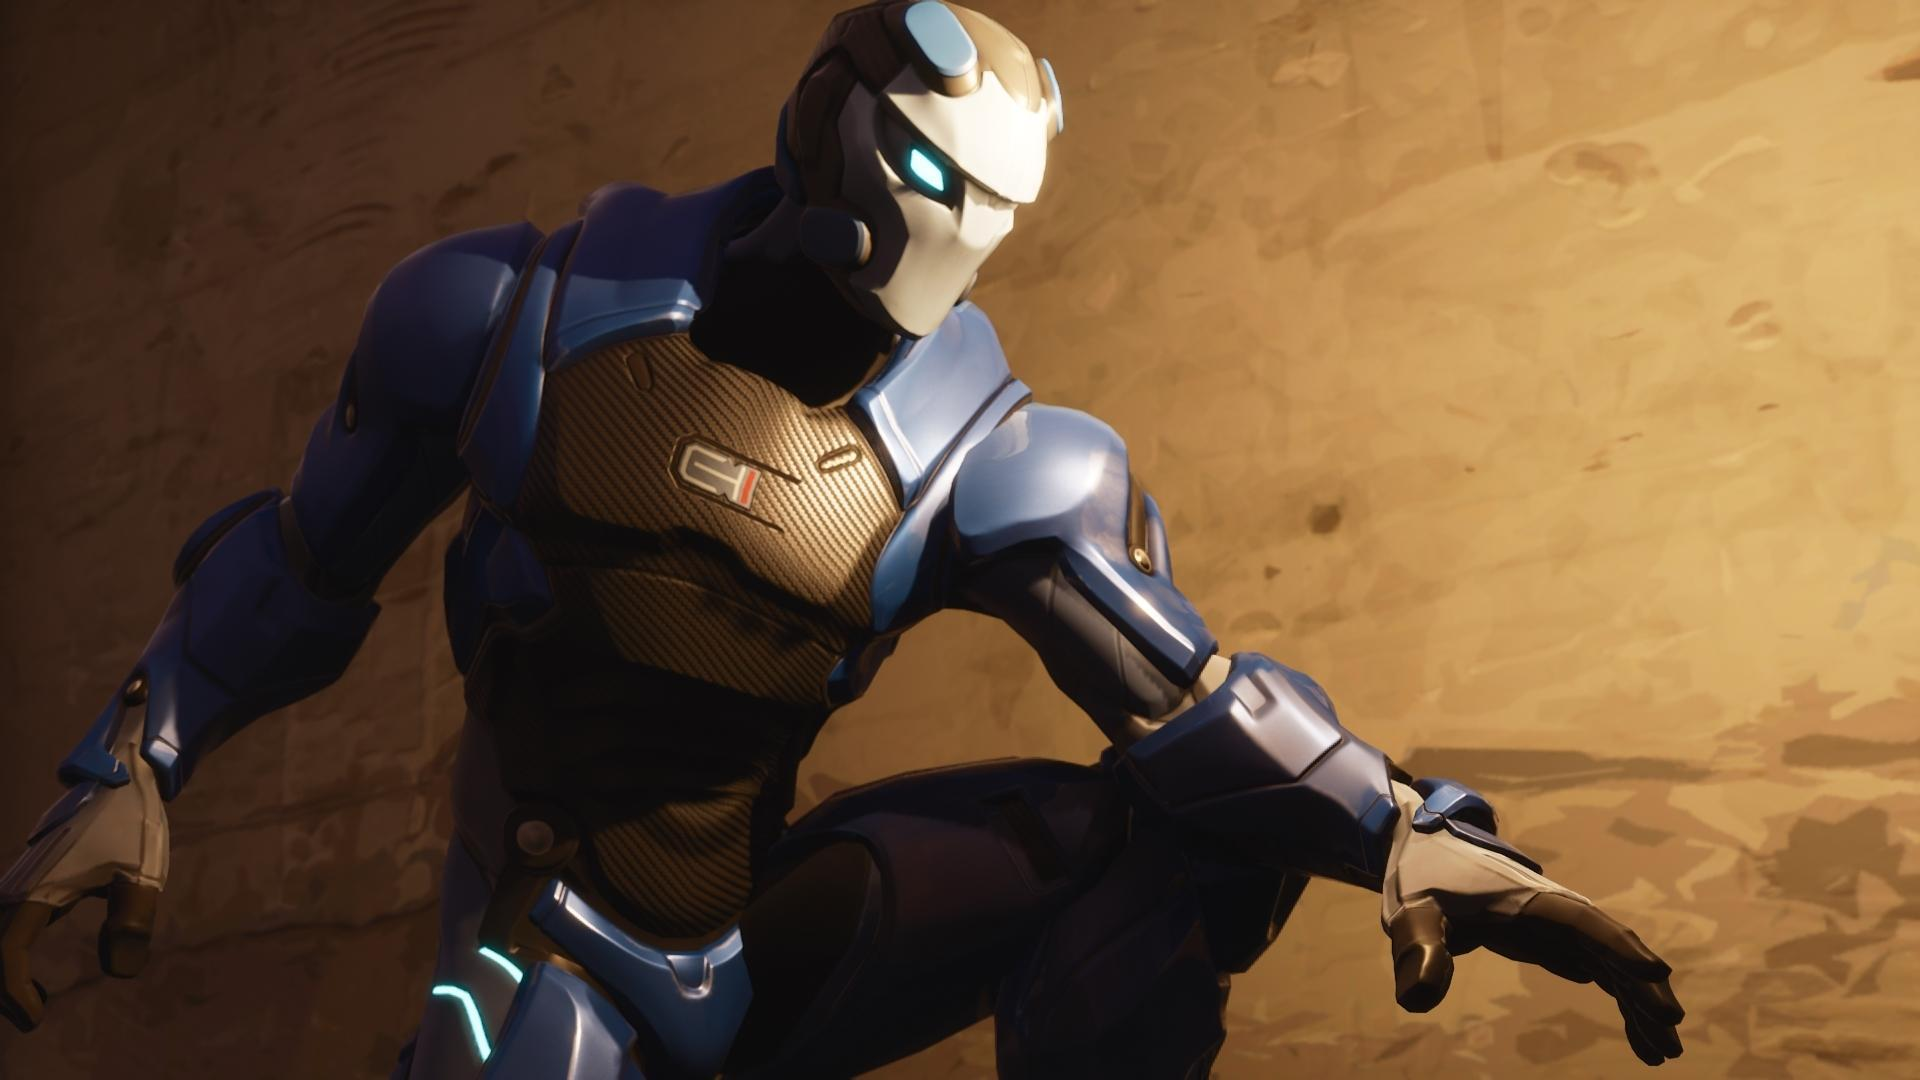 32 Best Free Fortnite Cool Carbide Wallpapers - WallpaperAccess